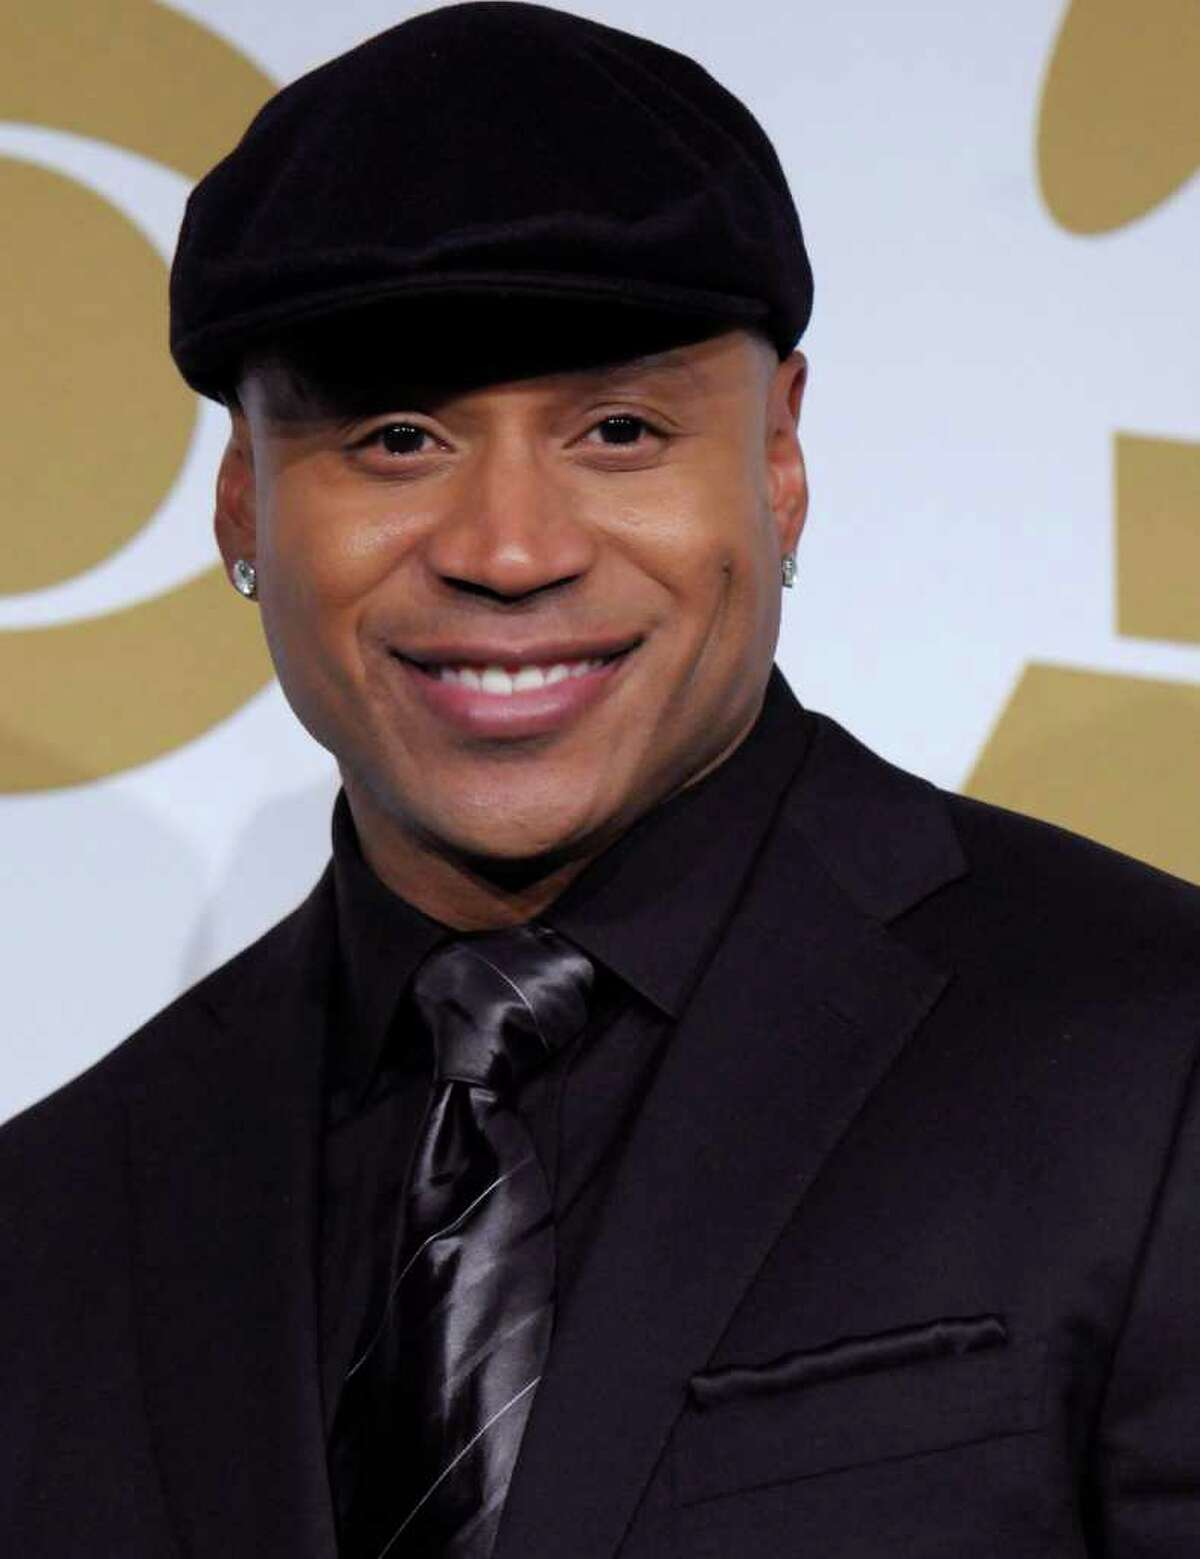 L.L. Cool J is seen backstage at the Grammy Nominations Concert on Wednesday, Dec. 1, 2010, in Los Angeles. (AP Photo/Dan Steinerg)